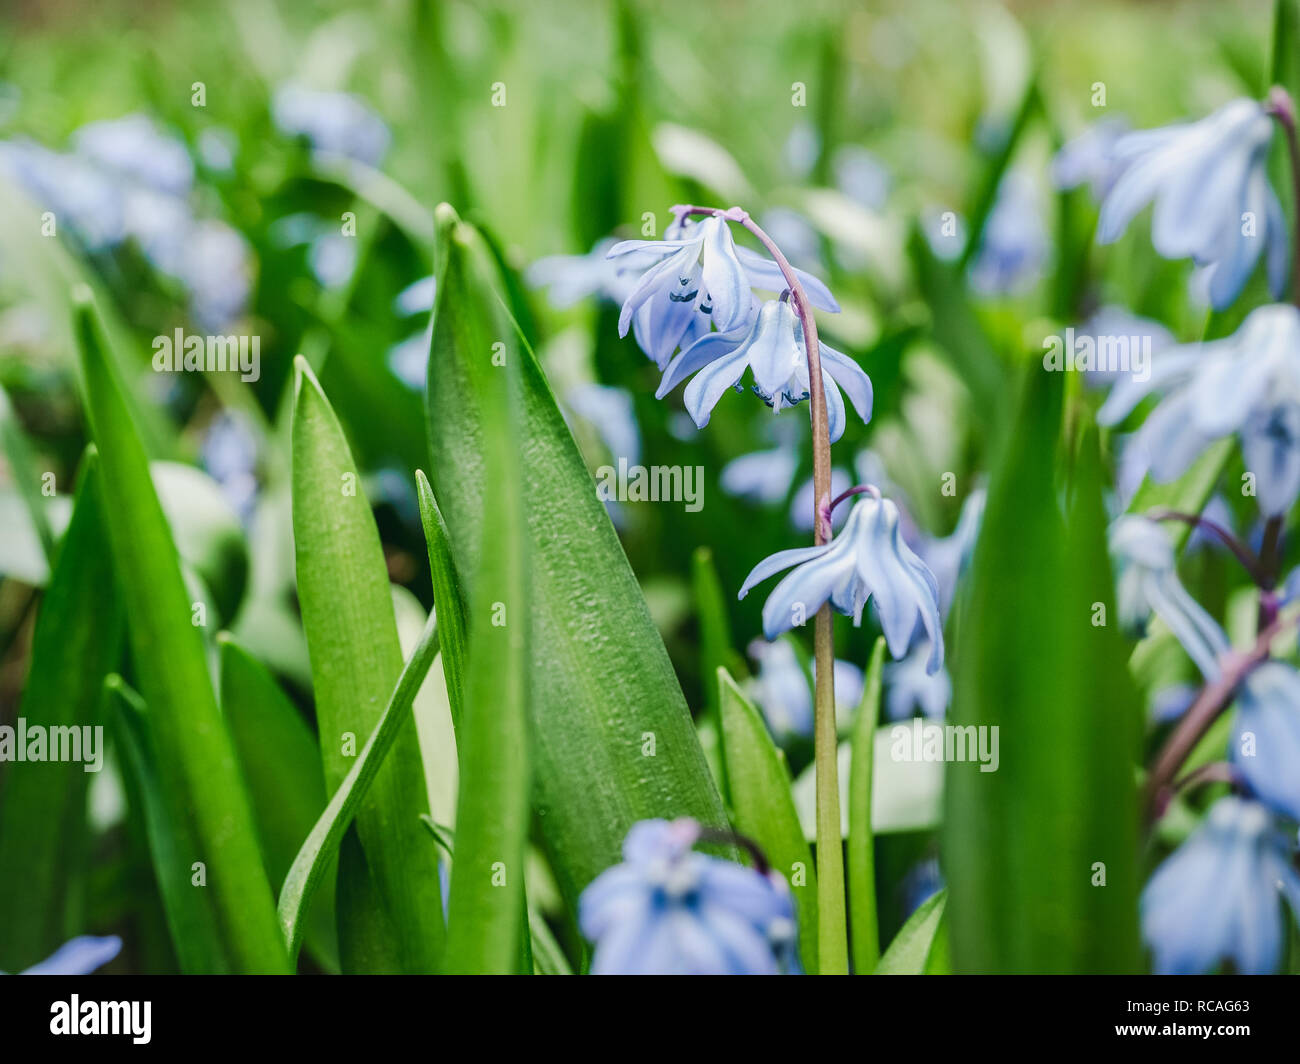 Early, bright, spring Scilla flowers on the background of young, green grass Stock Photo